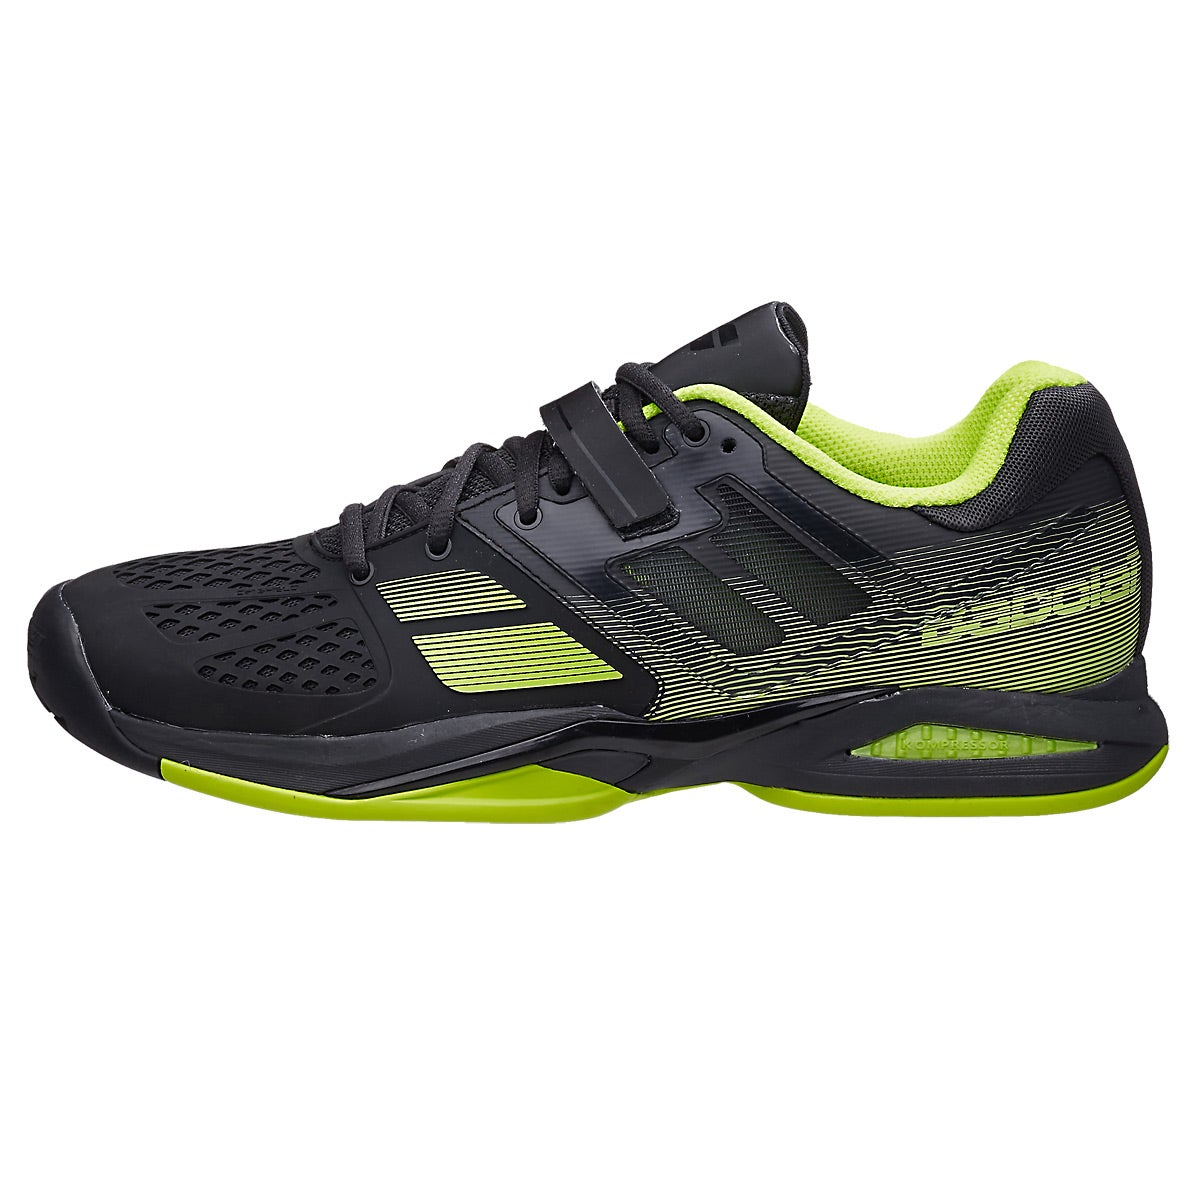 Babolat Tennis Shoes >> Babolat Propulse All Court Yellow Women's Shoes 360° View